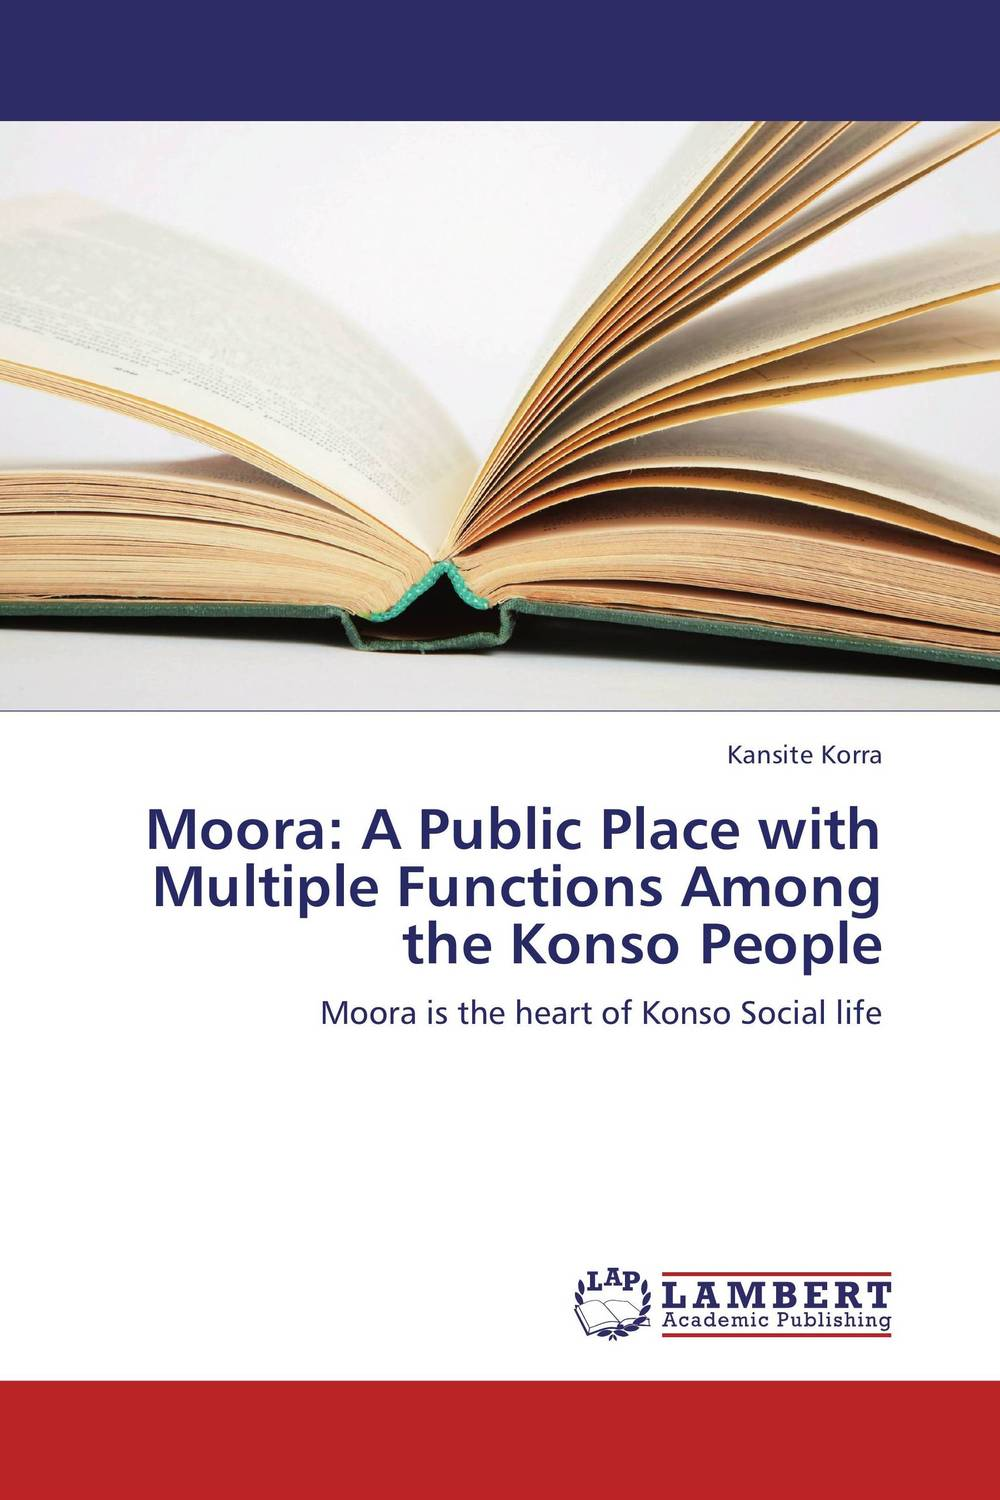 Moora: A Public Place with Multiple Functions Among the Konso People таро райдер уэйт 78 карт 978 5 91250 497 6